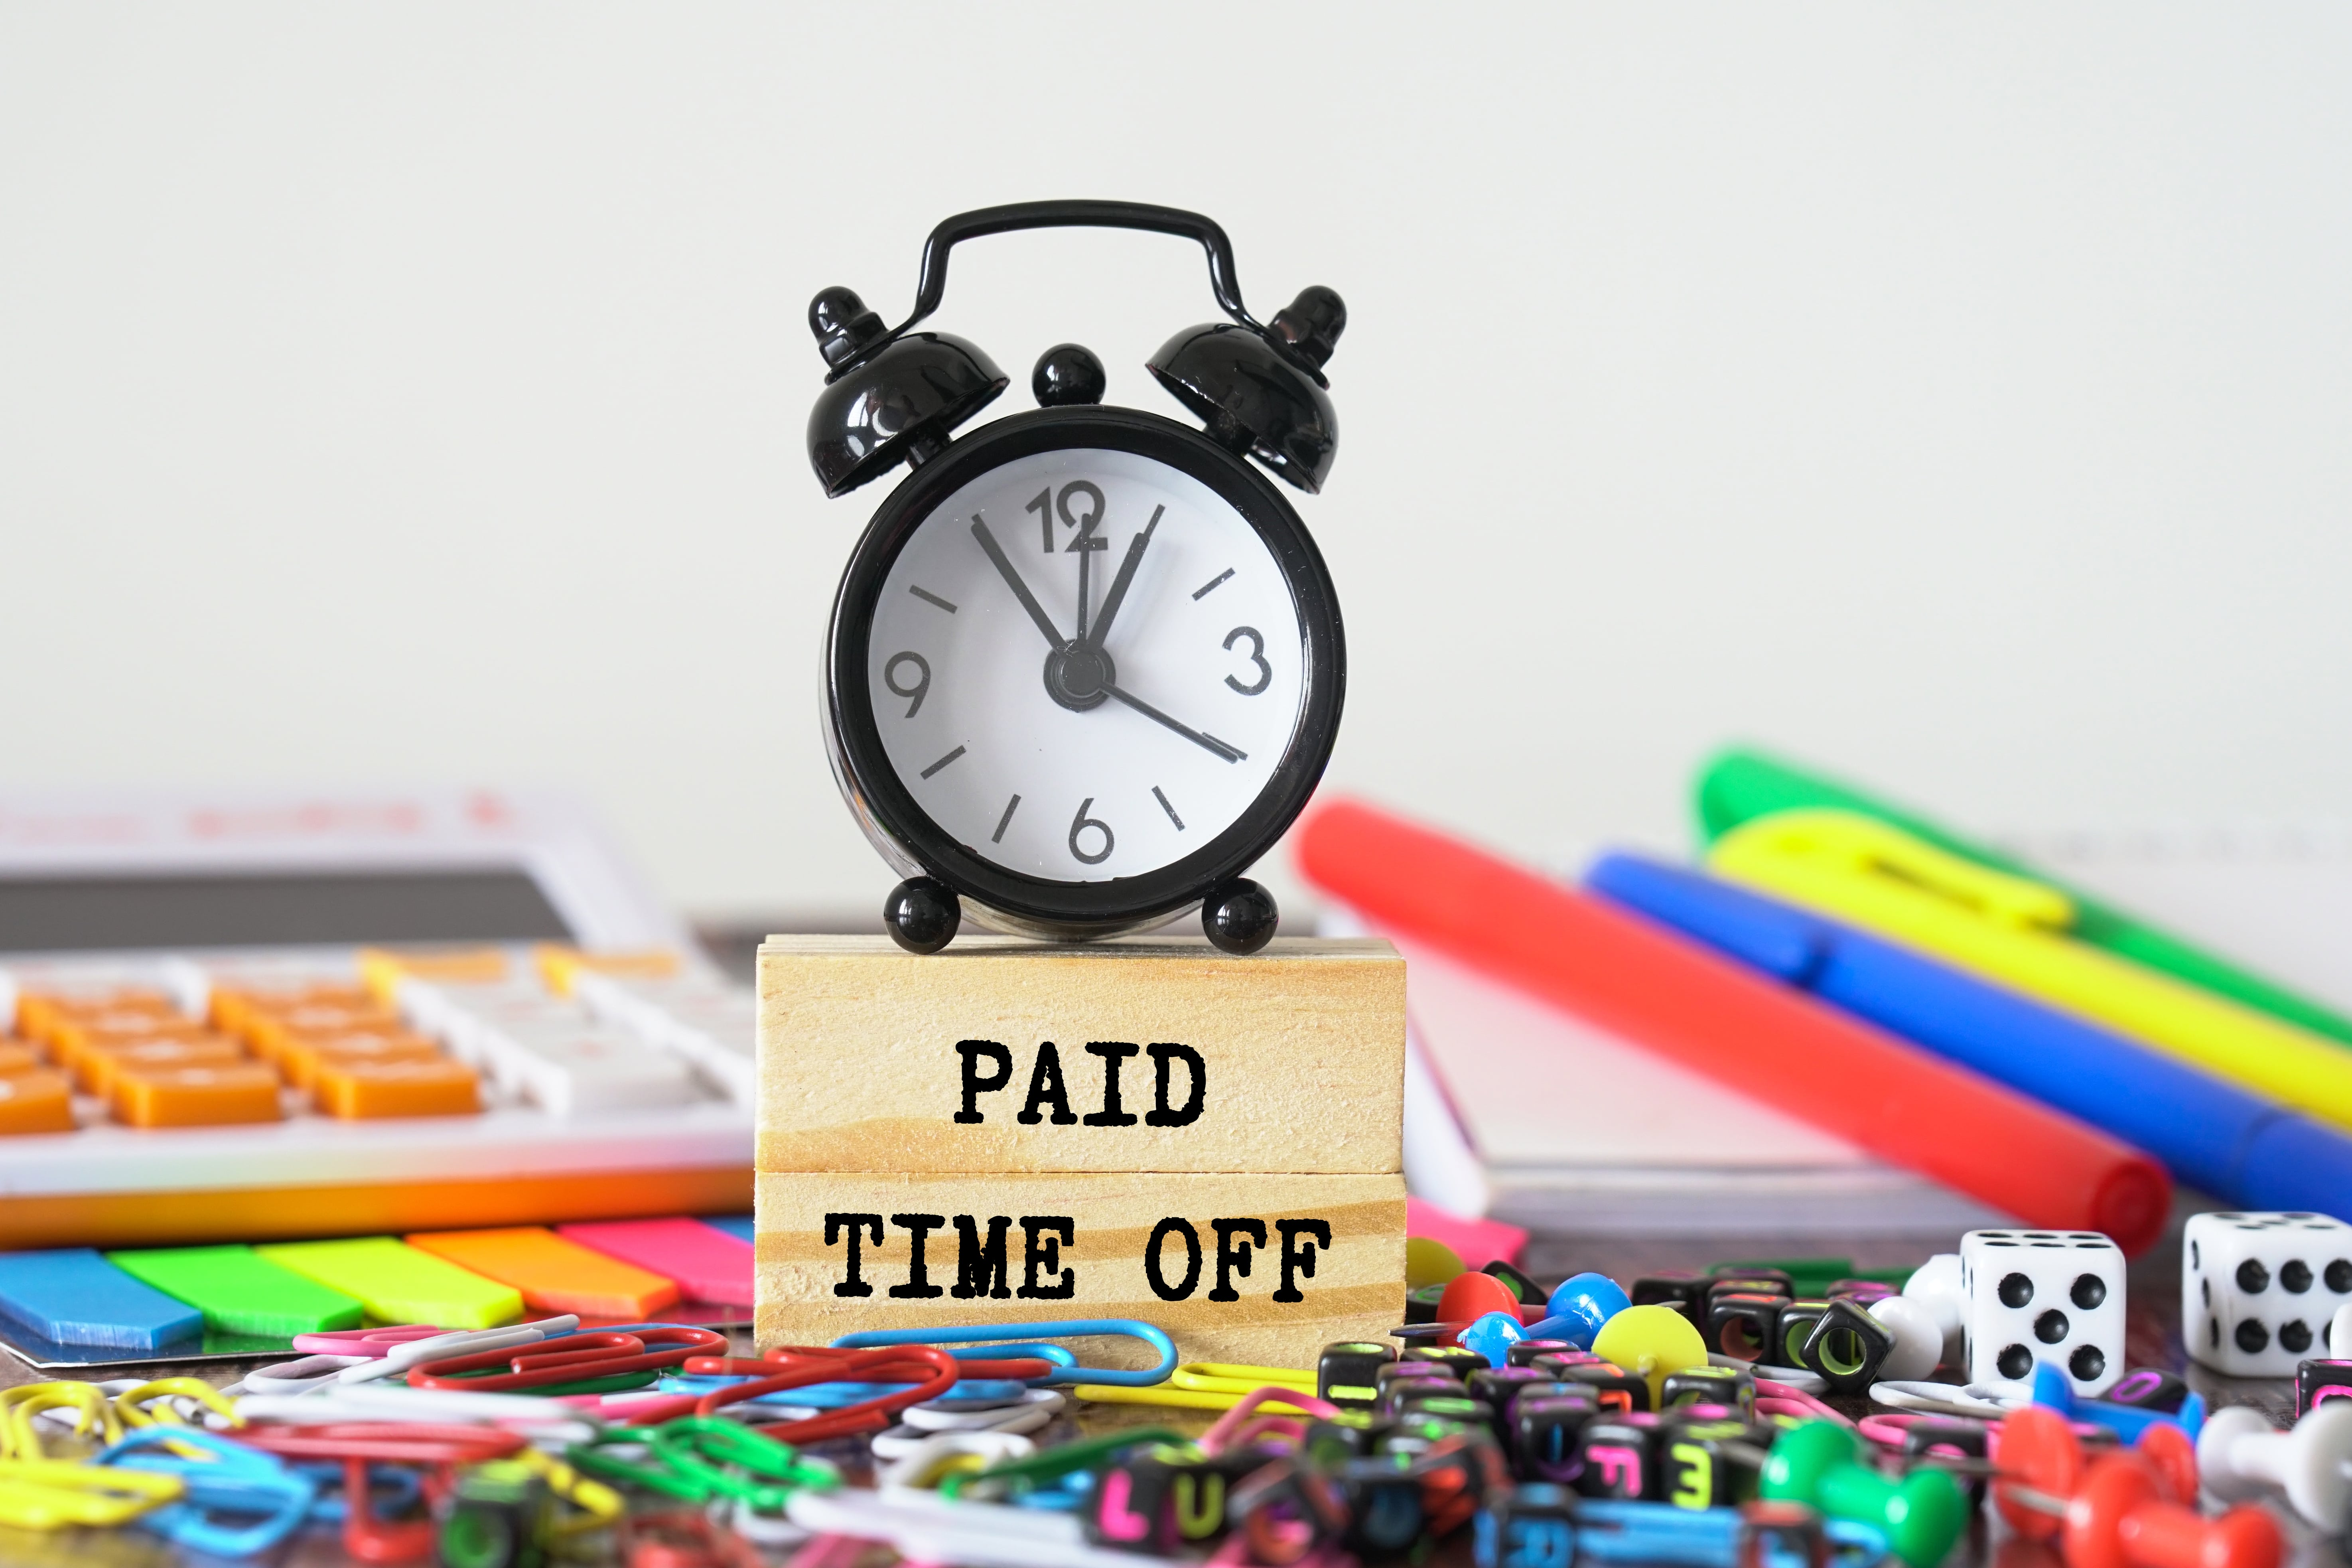 A Better Policy for Paid Time Off